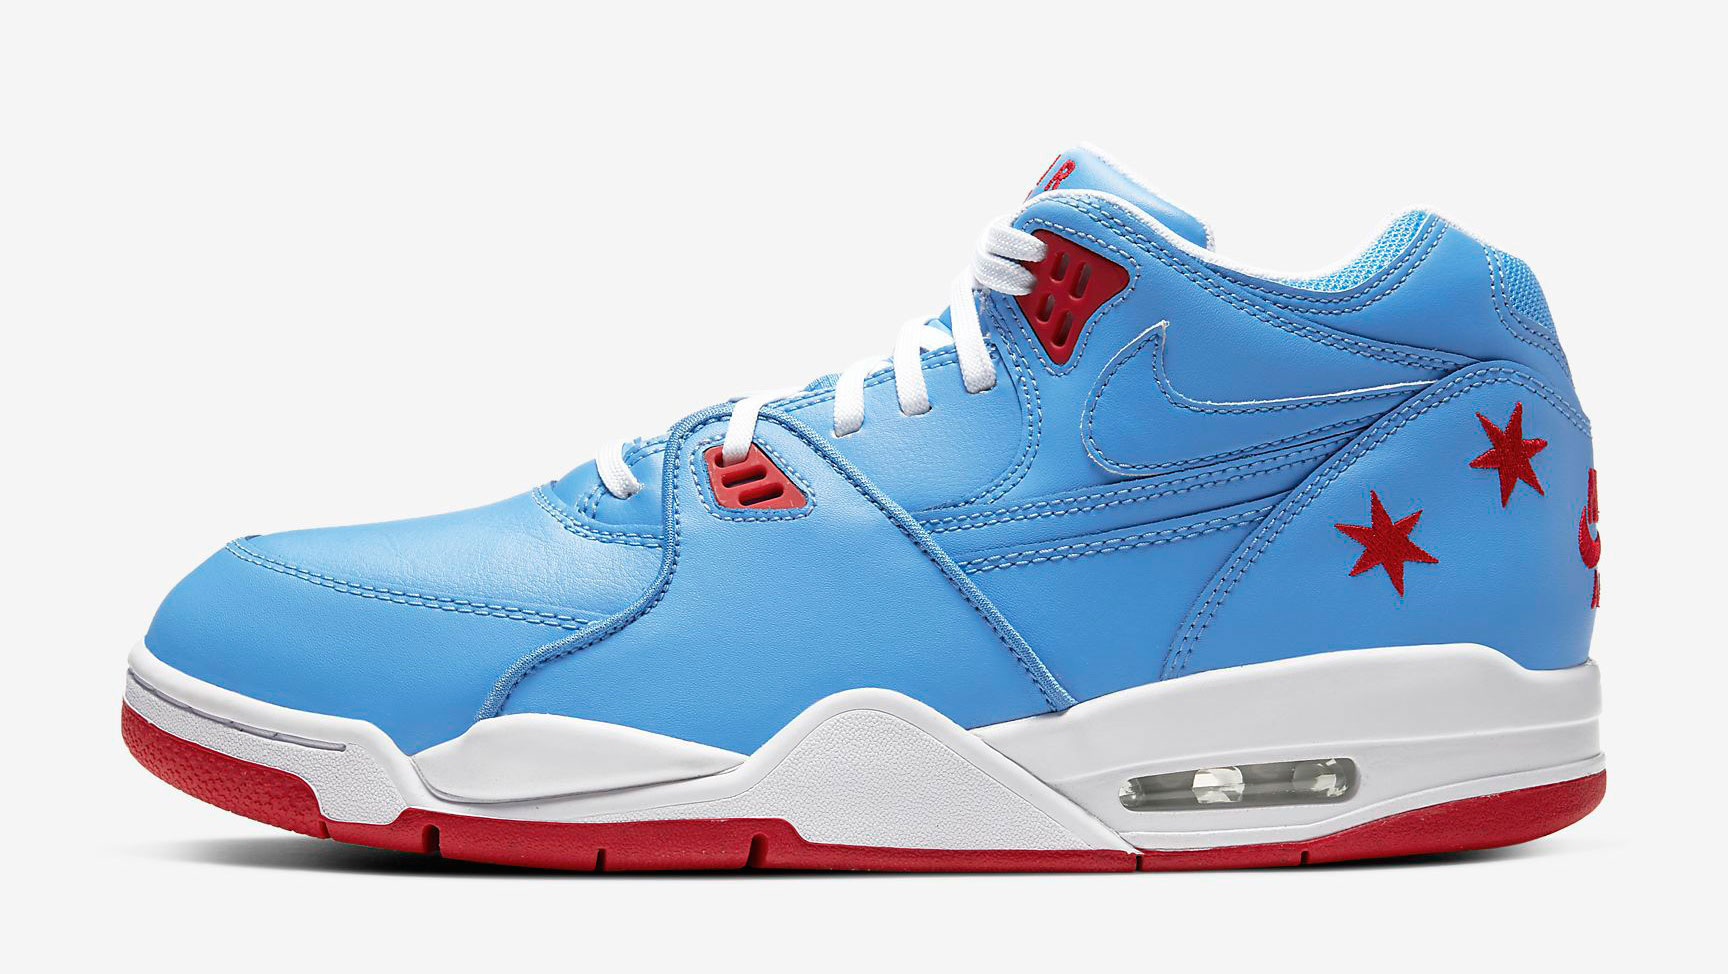 nike-air-flight-89-chicago-where-to-buy